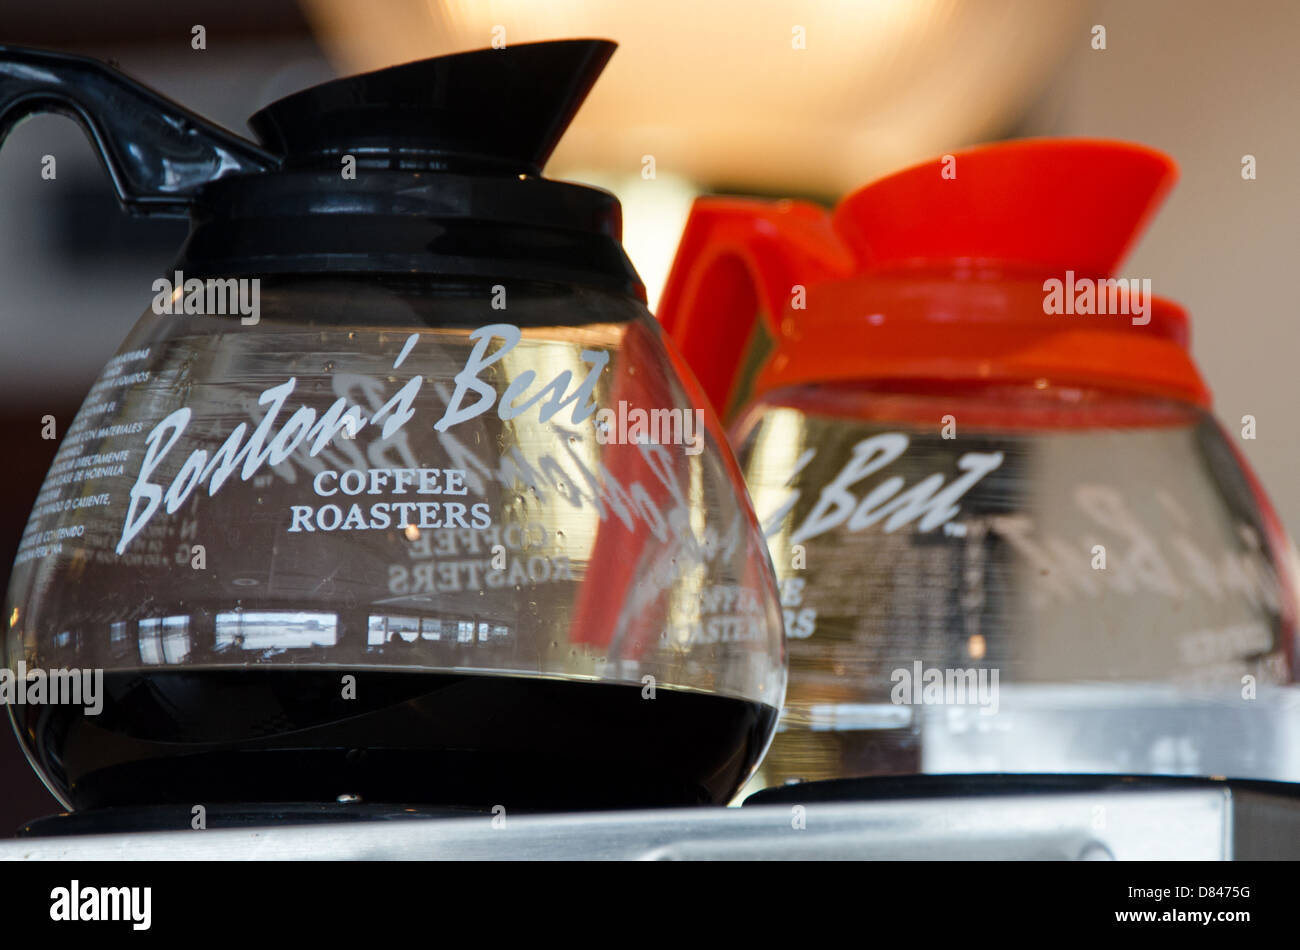 Closeup of two pots of coffee in a diner - caff and decaf. - Stock Image